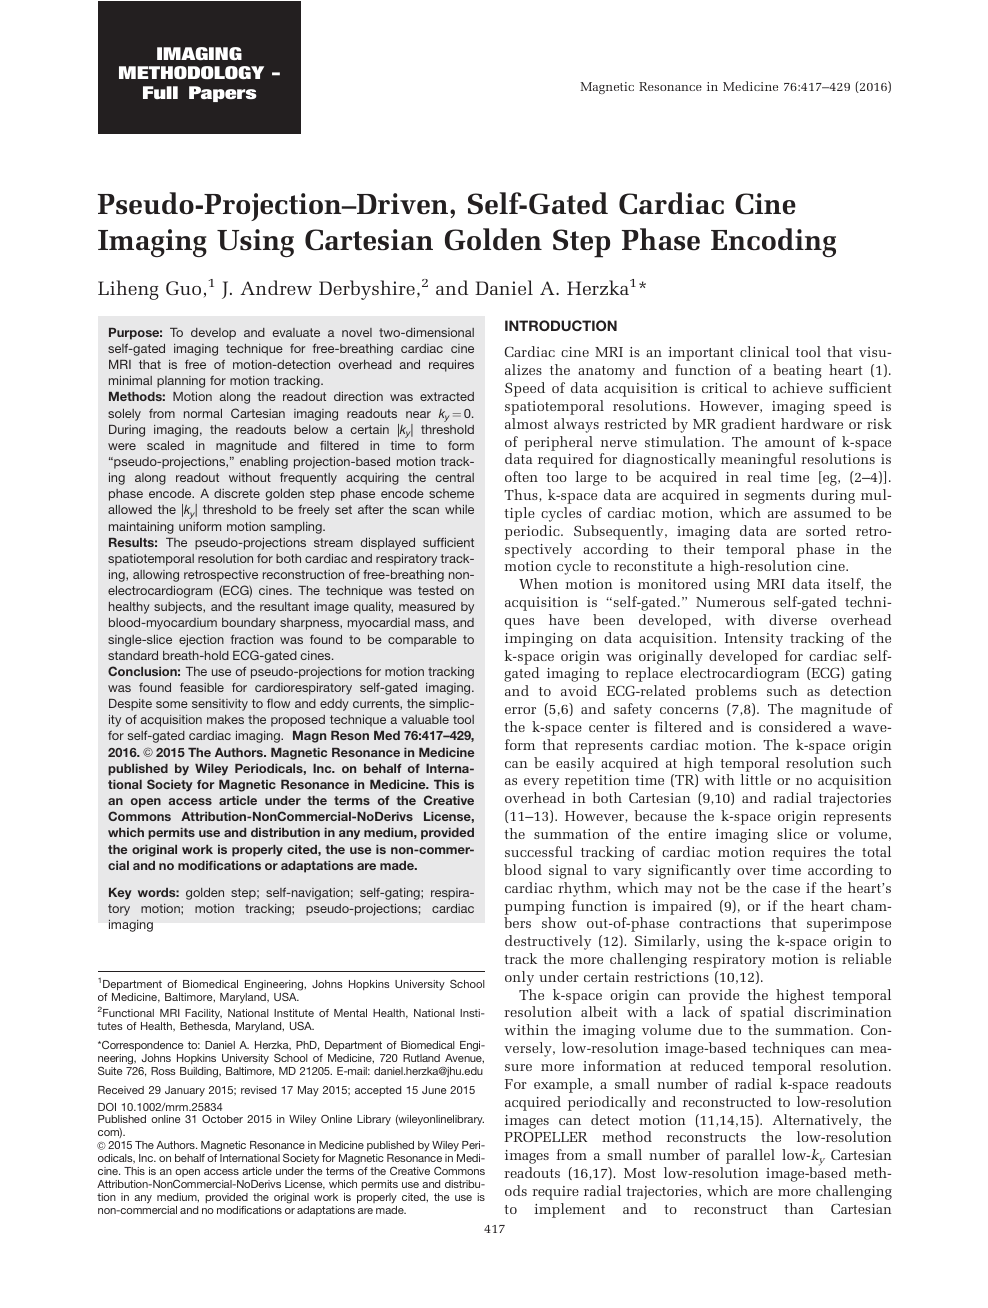 Pseudo-projection-driven, self-gated cardiac cine imaging using